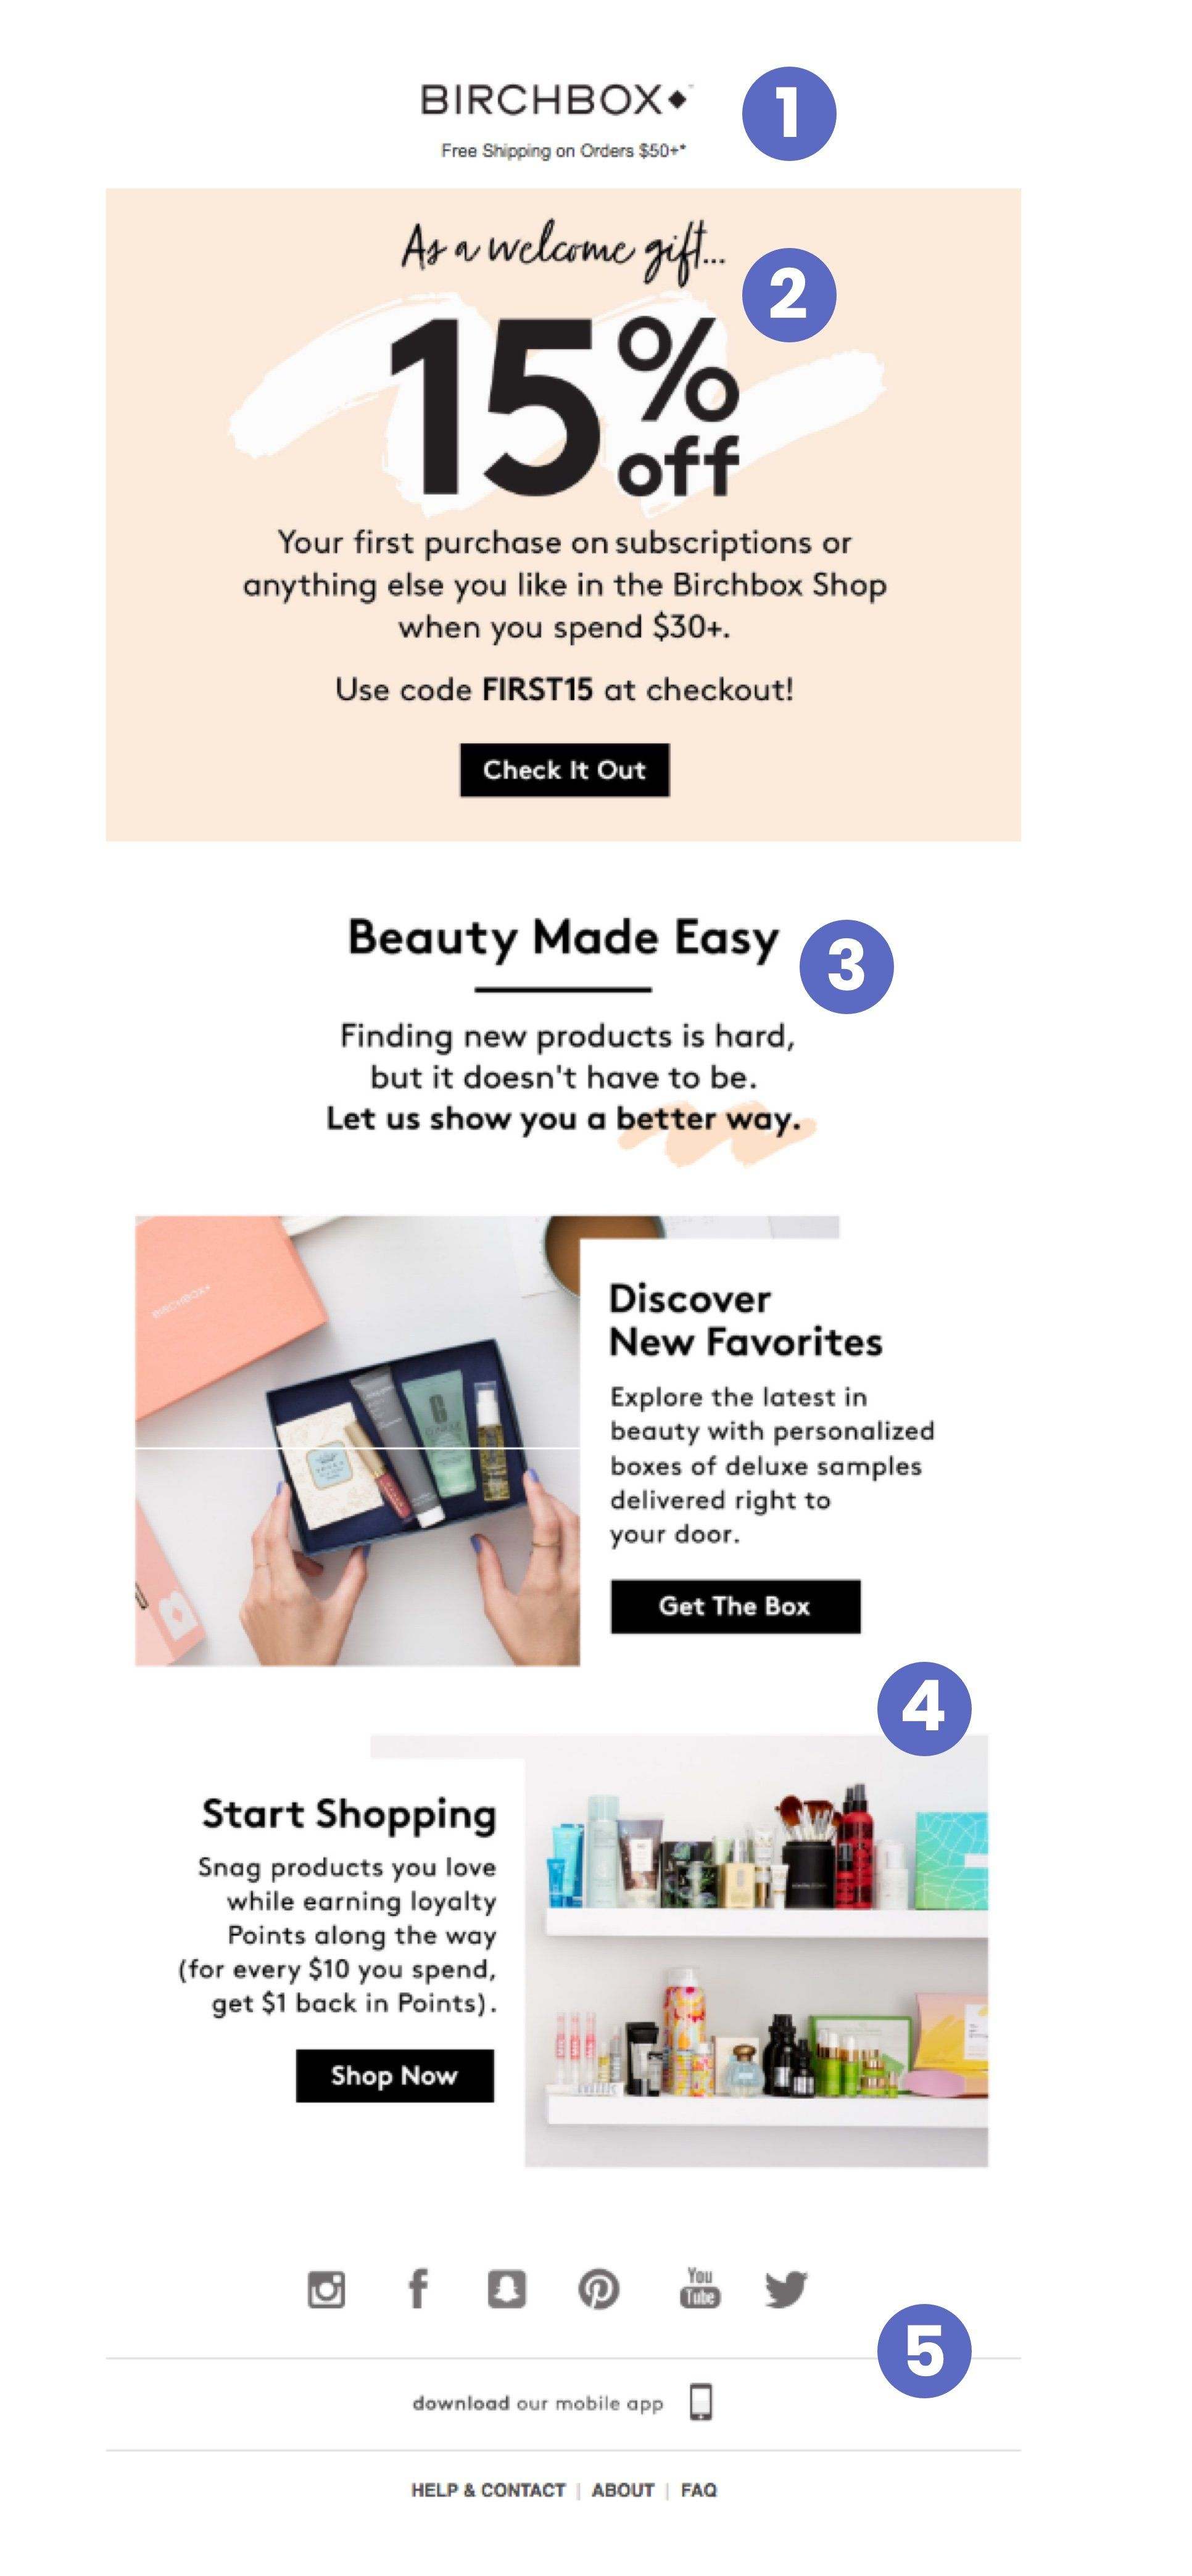 Lessons from 2 months of marketing emails from a fast-growing ecommerce brand